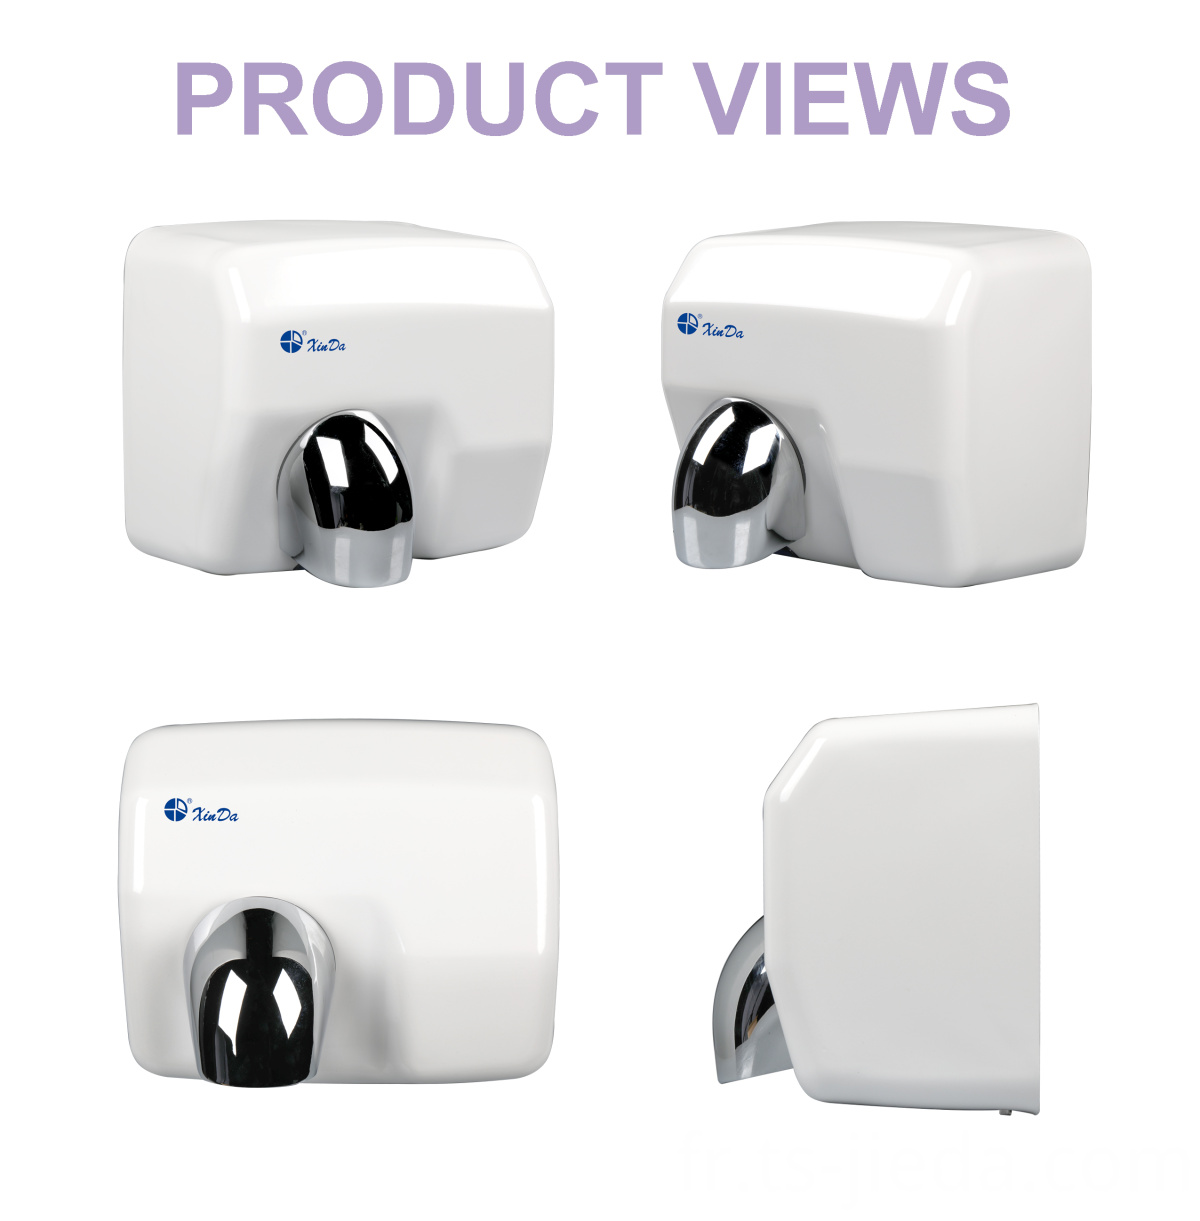 Powder white hand dryer with multi-directional airflow